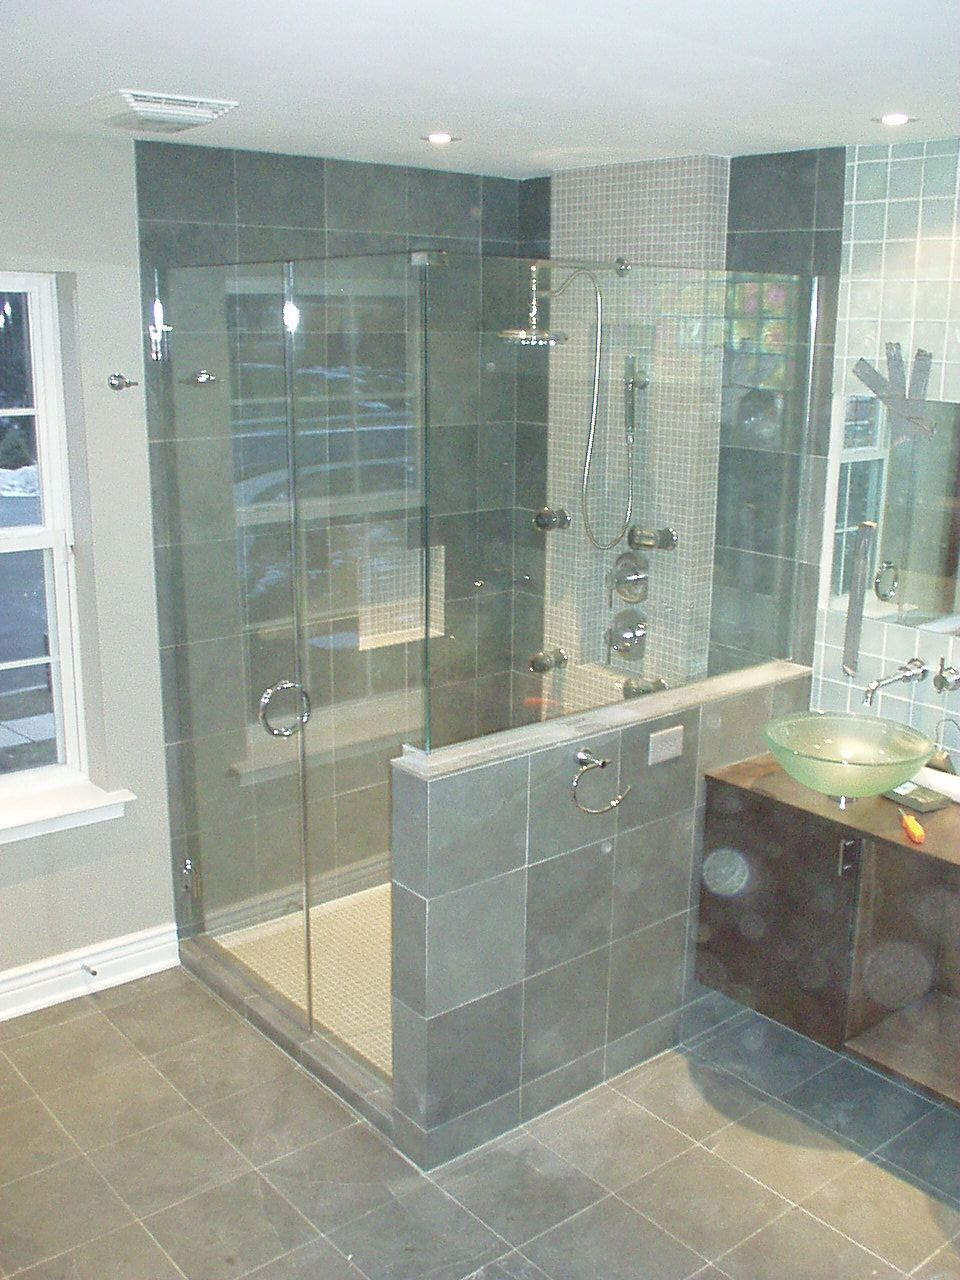 Bathroom Olympus Digital Camera Frameless Shower Doors Complete The Captivating Master Bathroom